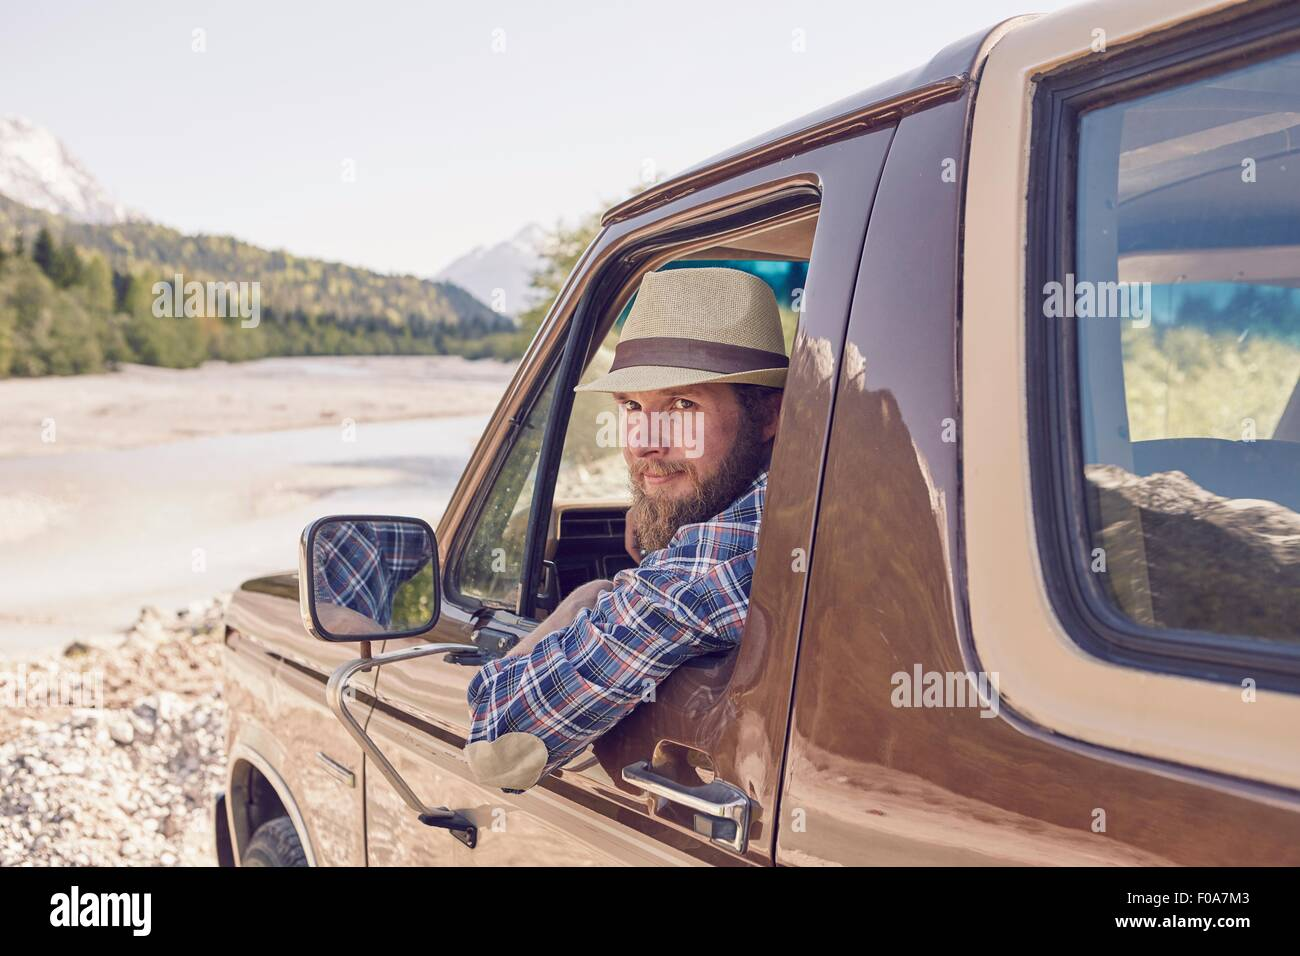 Mid adult man sitting in truck, leaning out window, looking at camera - Stock Image